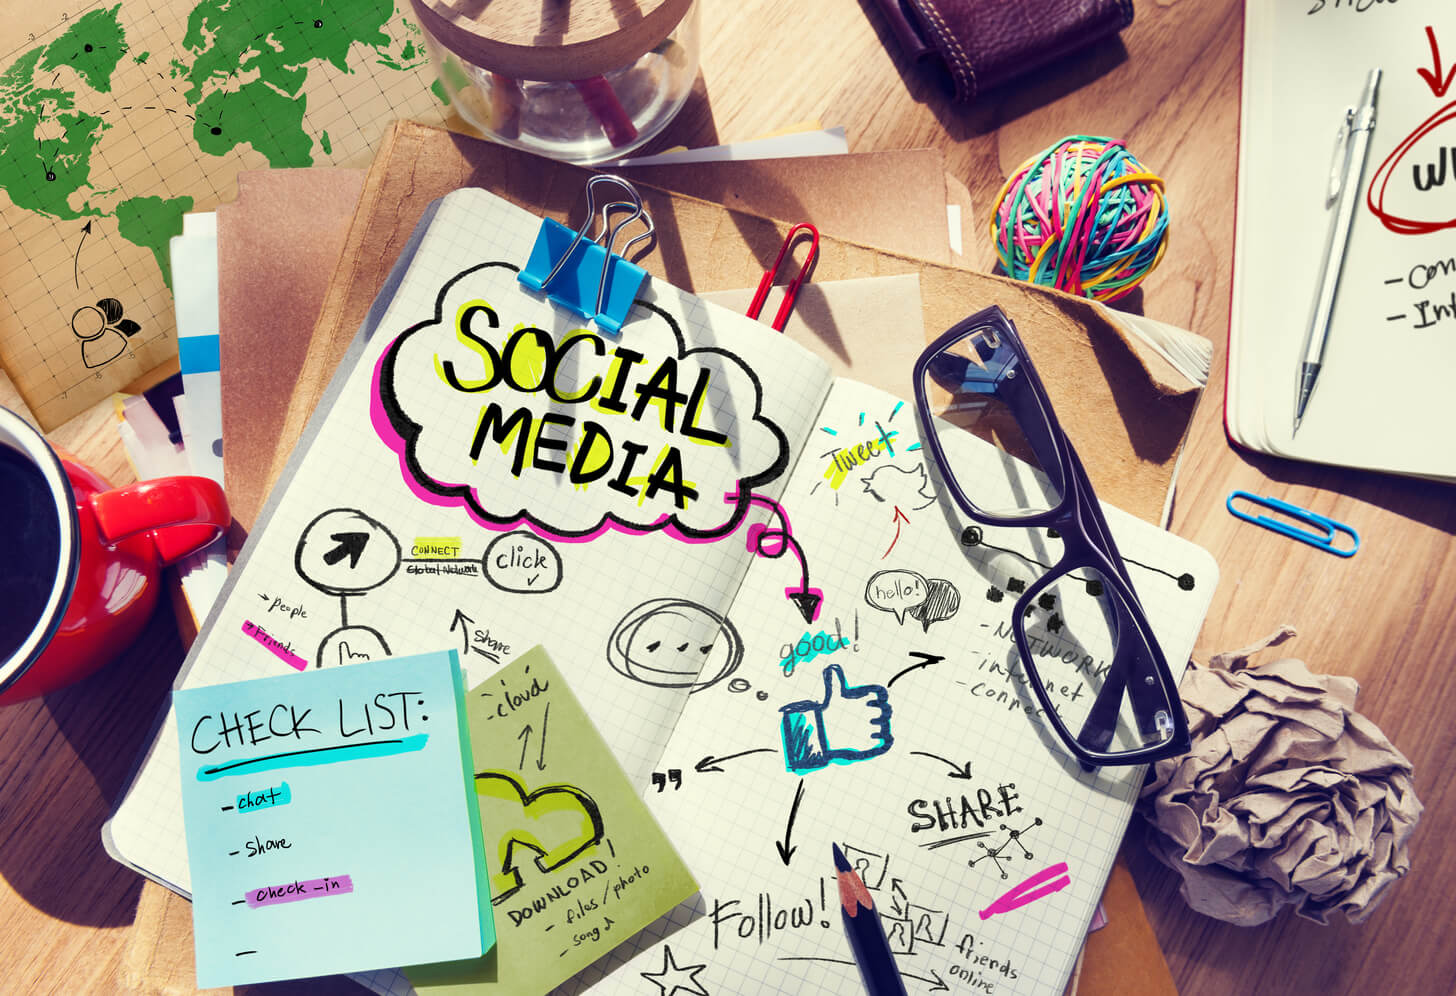 Social Media Marketing Agency near me Stockton CA